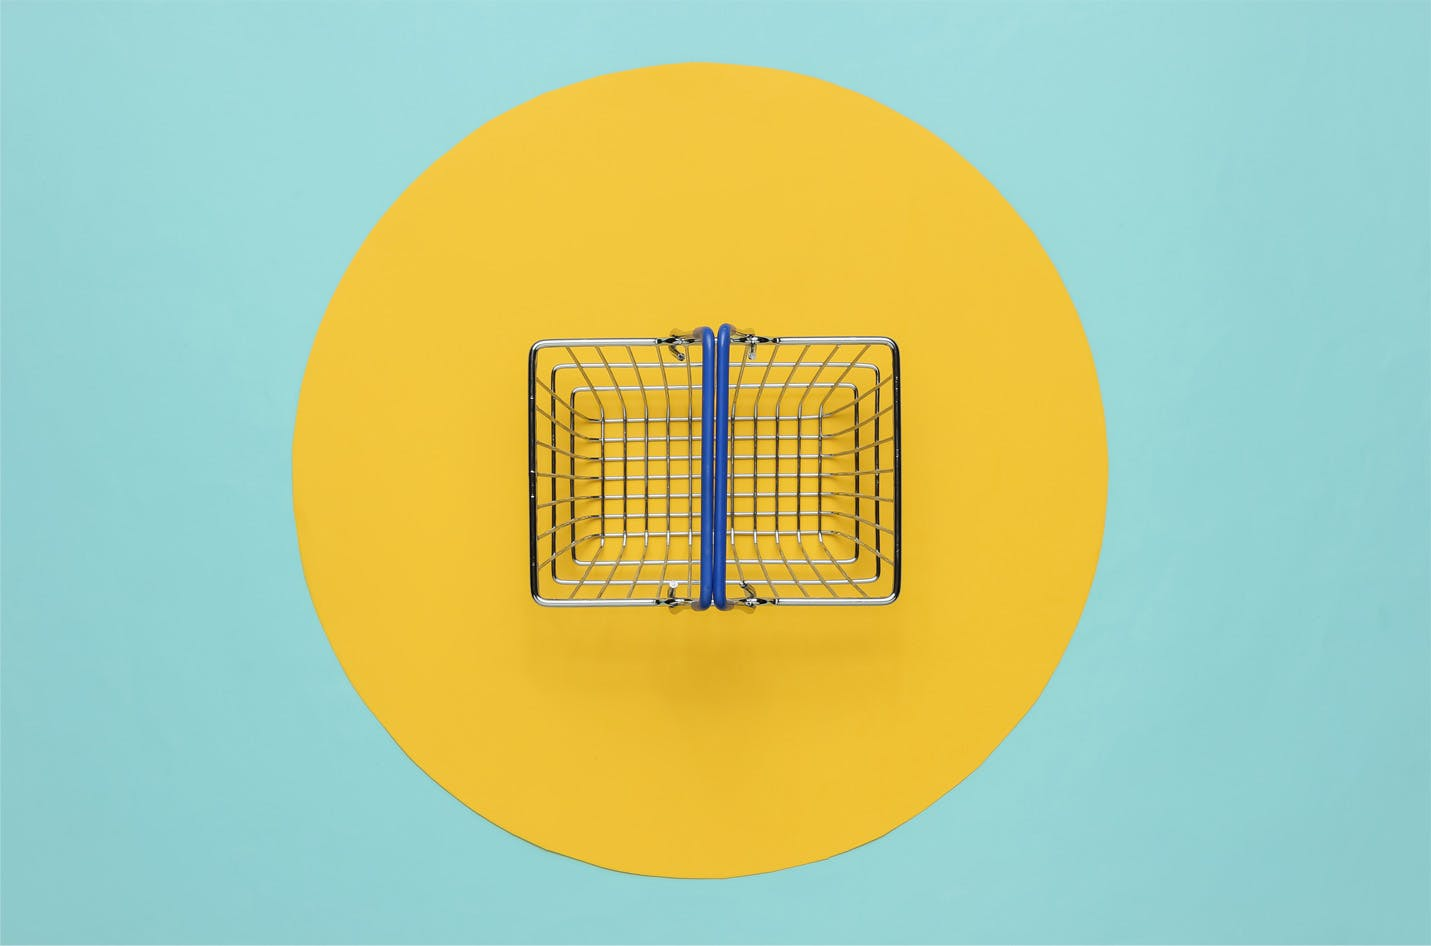 Mini shopping basket on blue background with yellow circle. Top view